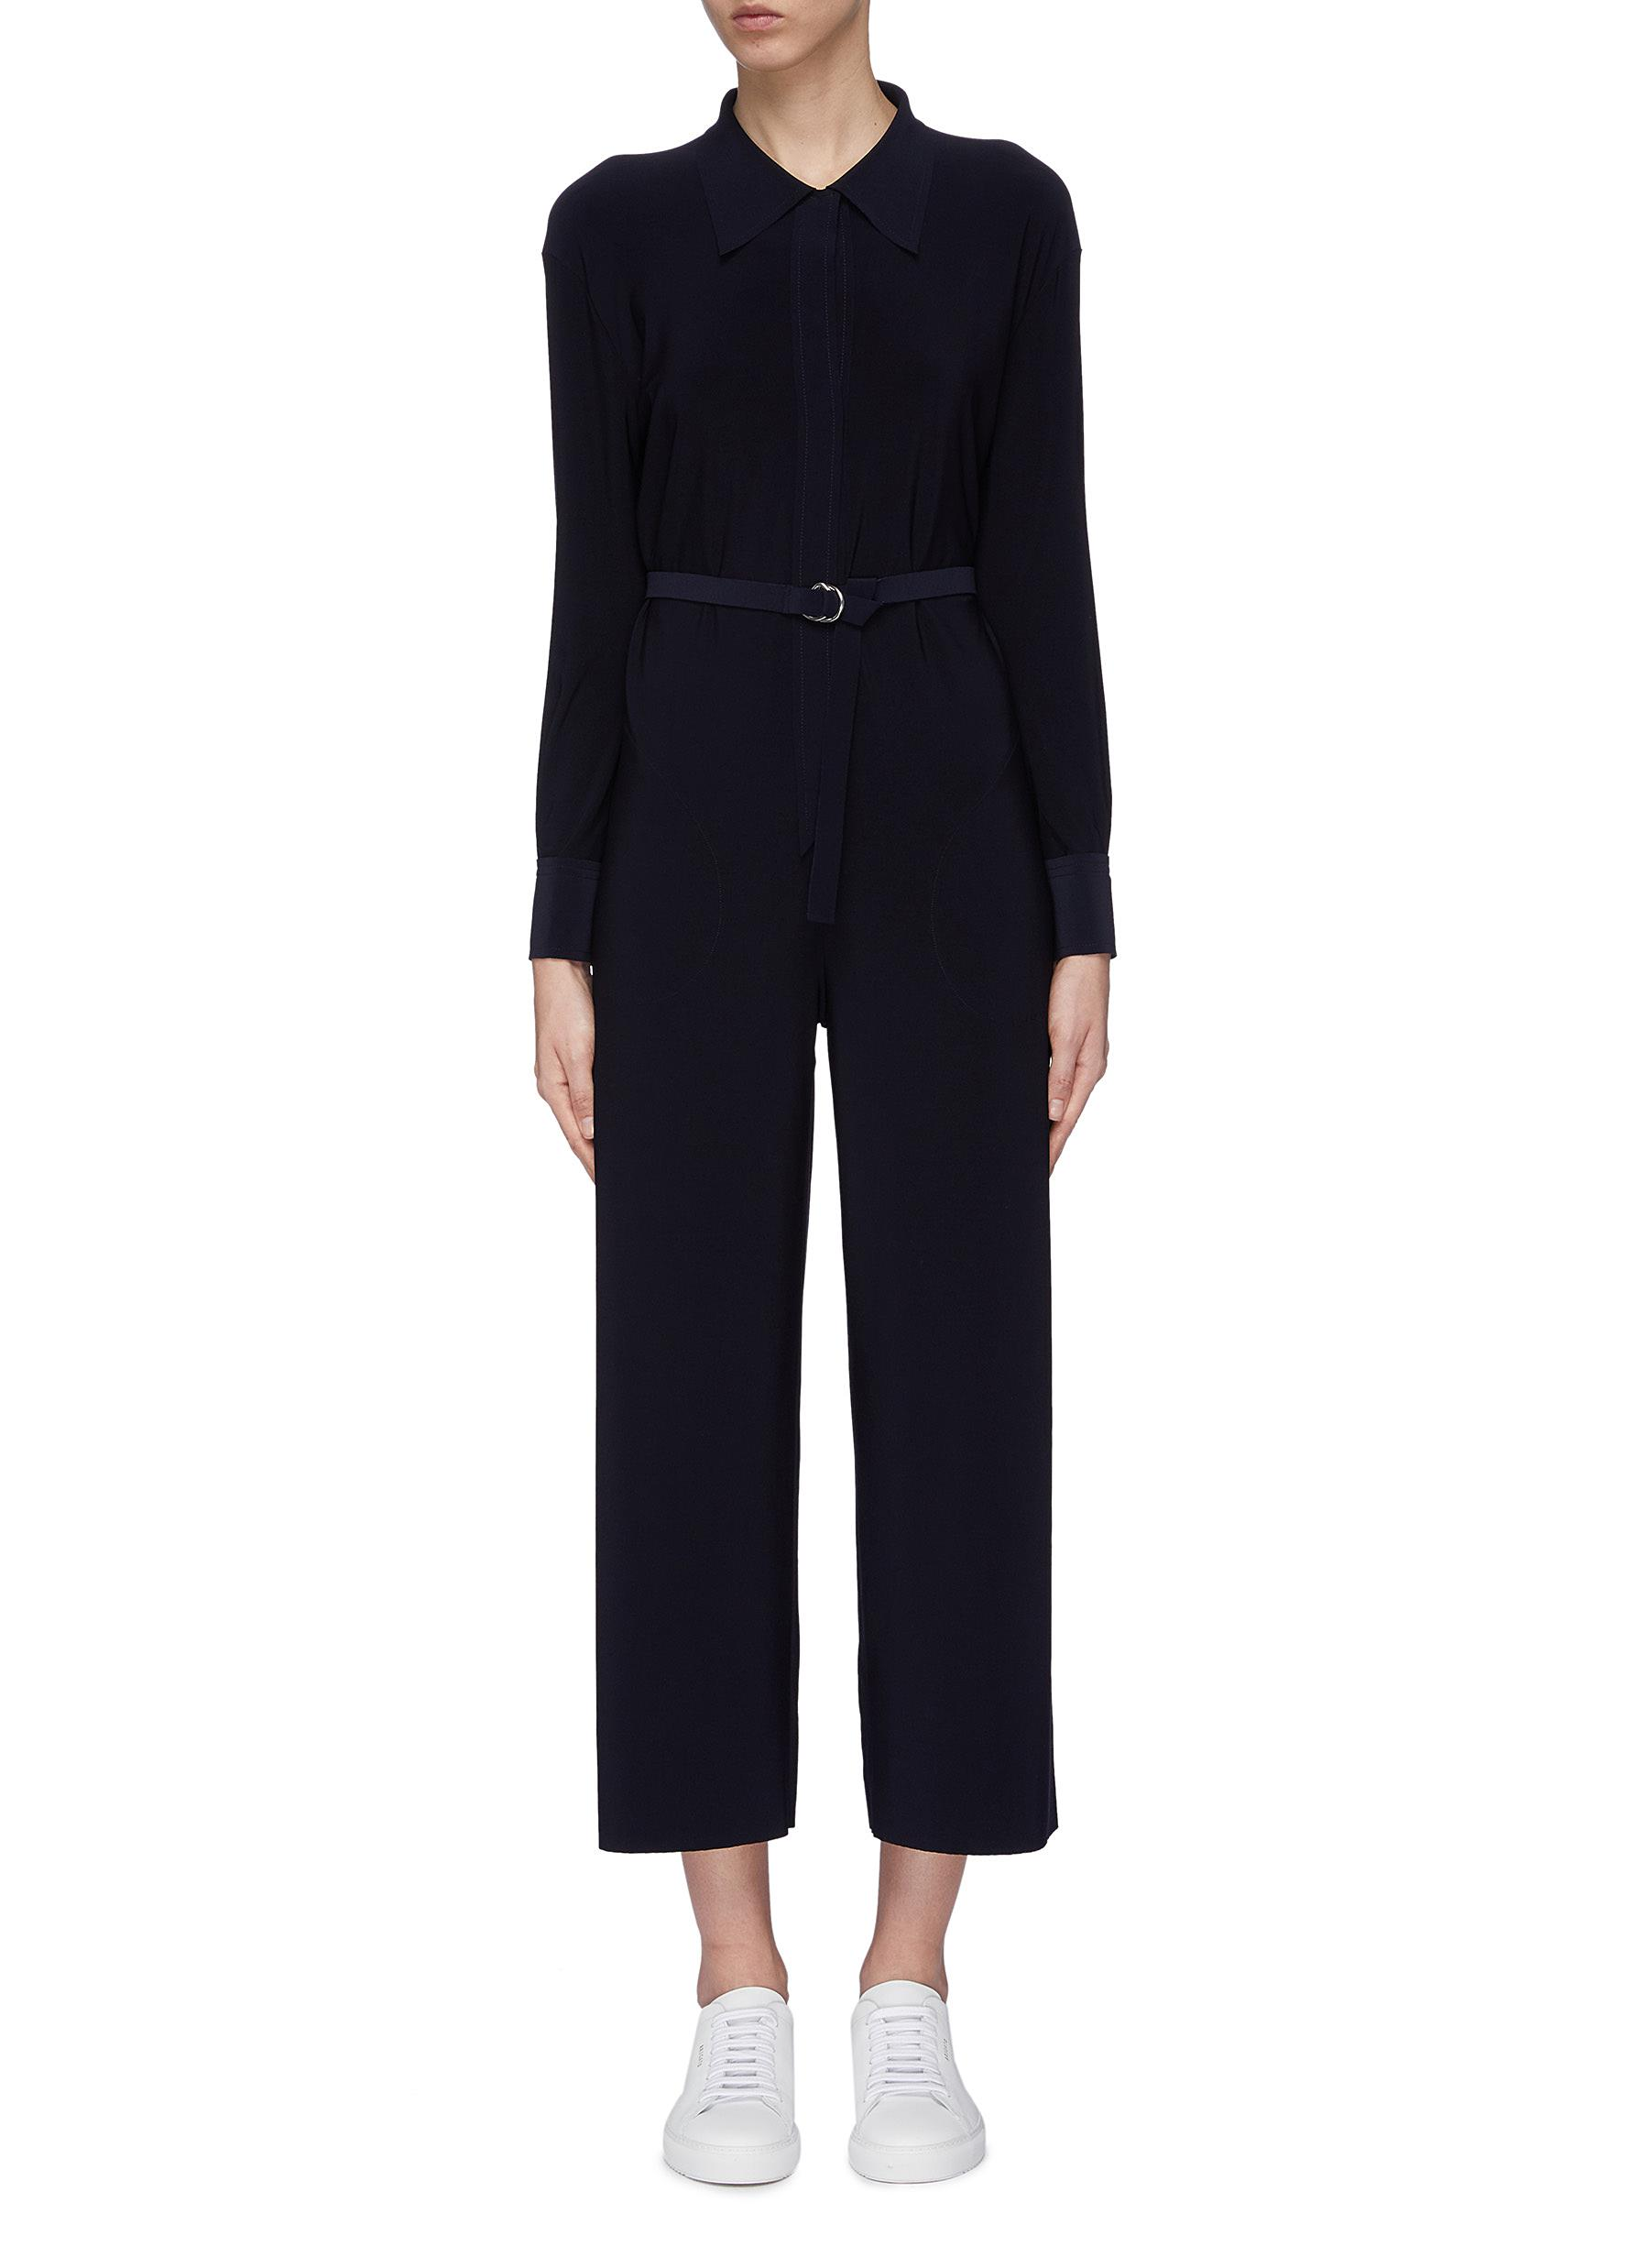 Belted cropped jumpsuit by Norma Kamali